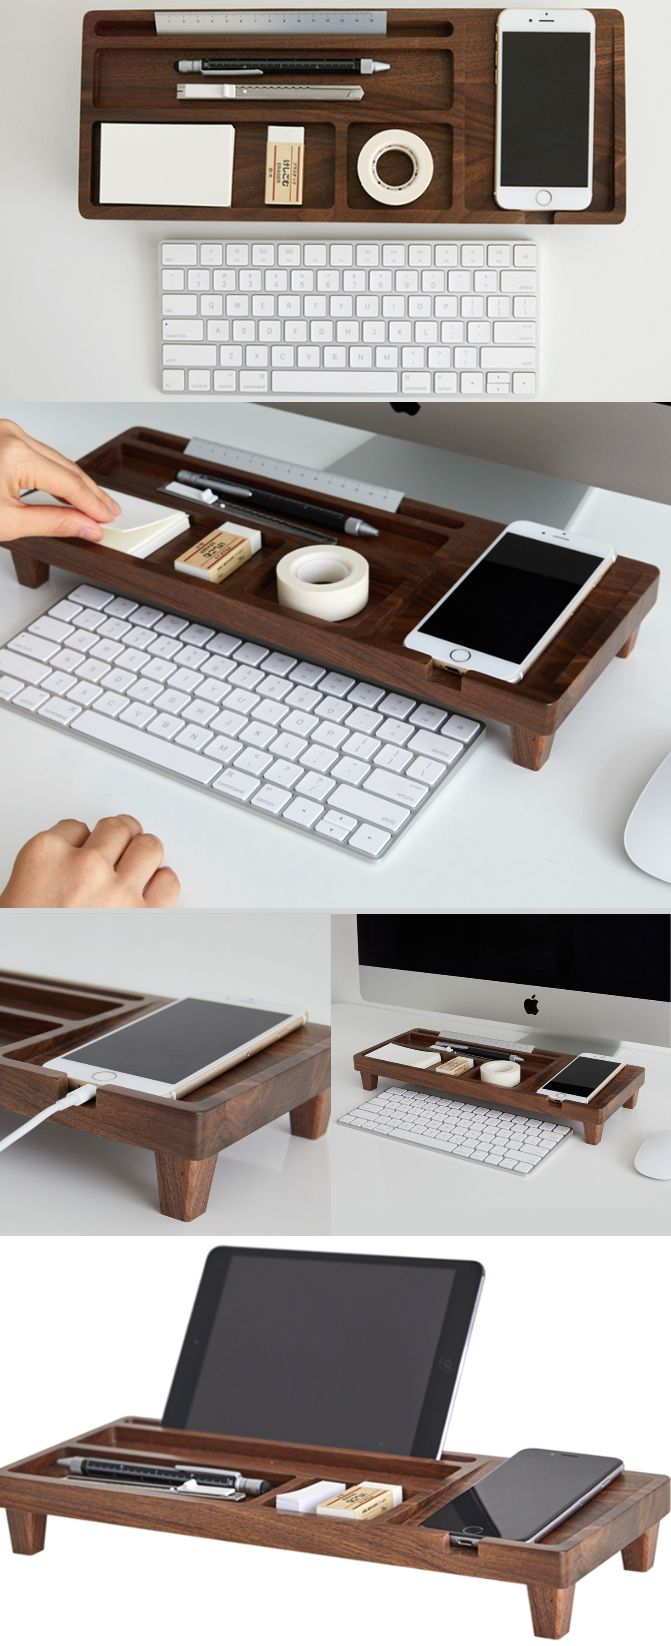 A Black Walnut Wooden Office Desk Organizer Iphone Cell Phone Charging Station Dock Mount Holder Charge Cord Cable Management System Pen Pencil